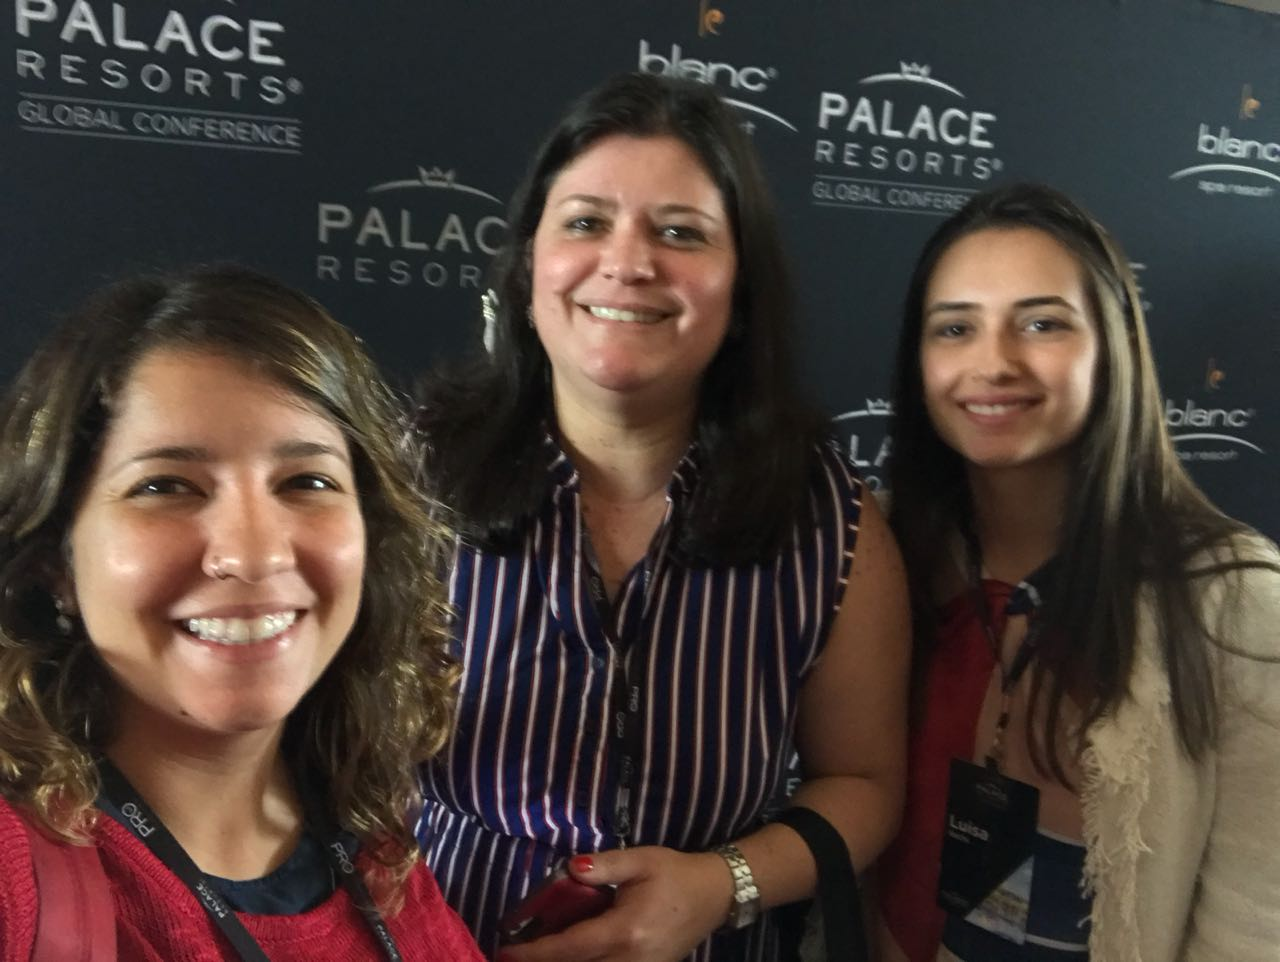 Palace Resorts Conferencia Global